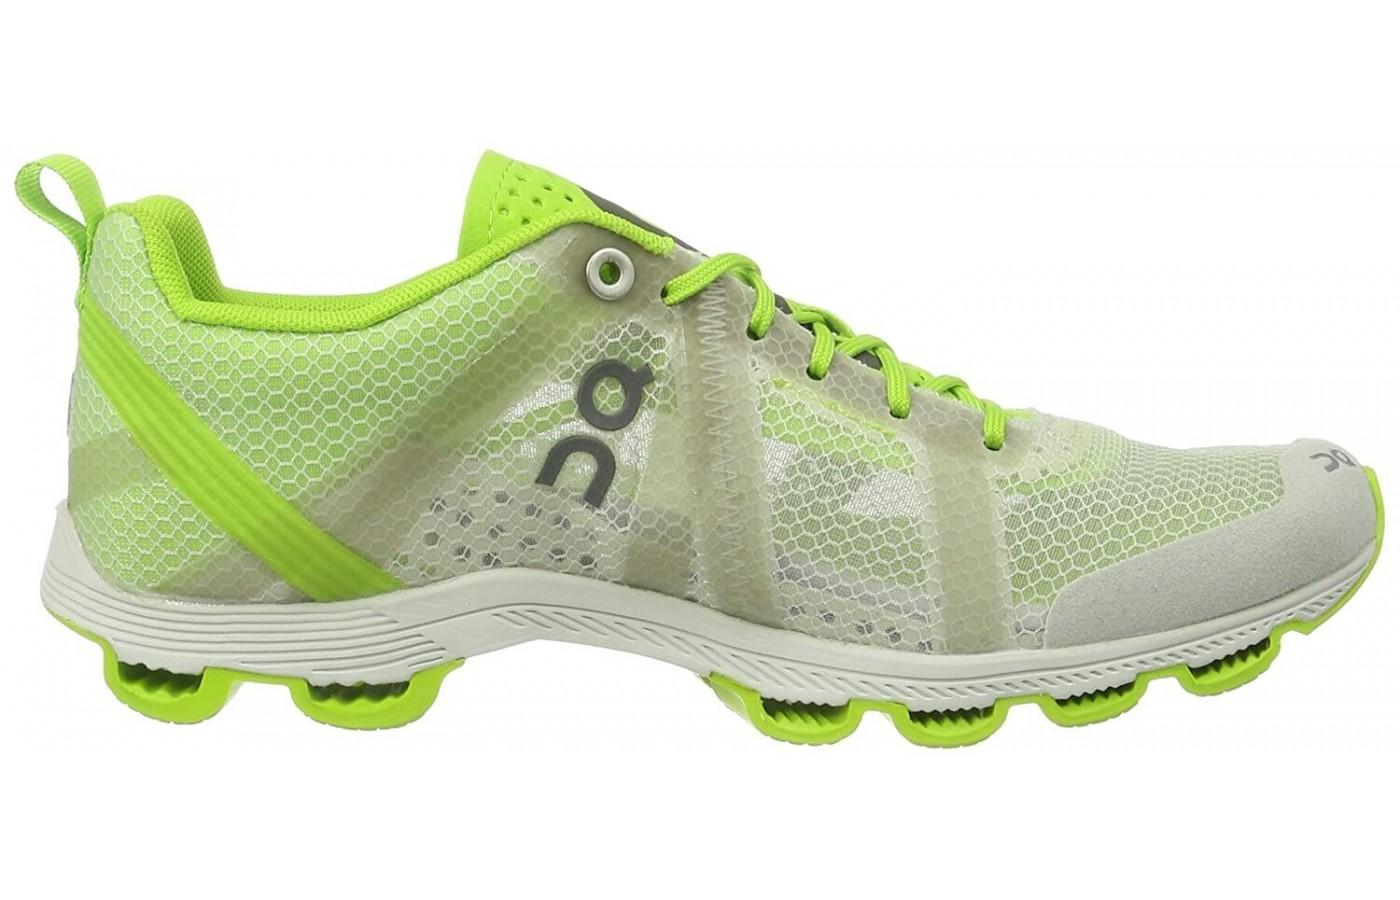 the Cloudracer comes in this bright neon yellow green